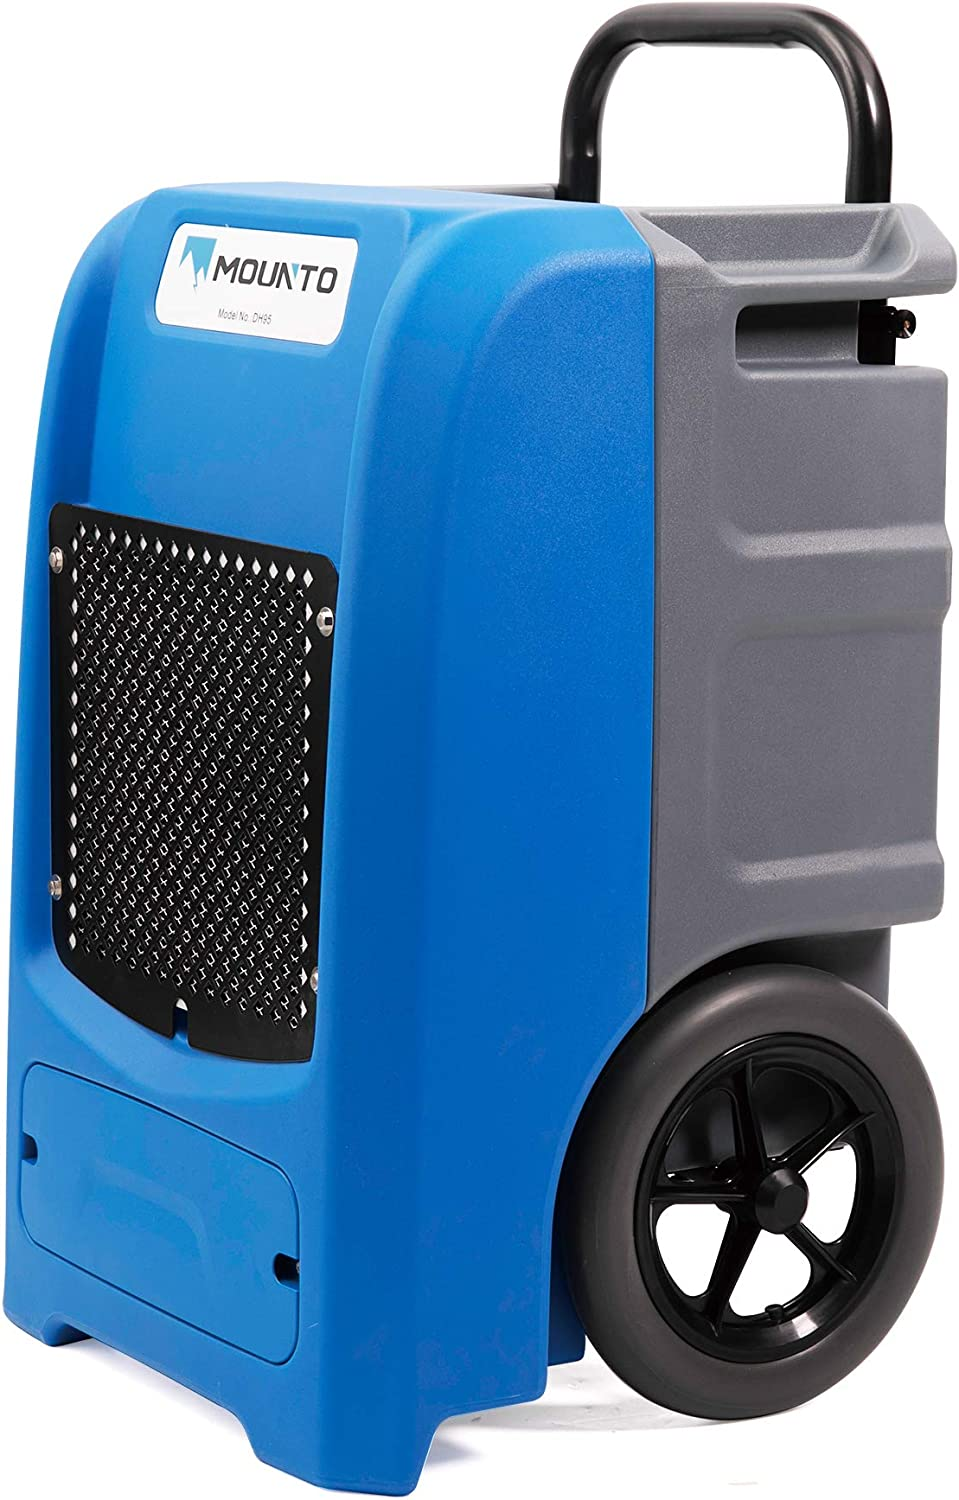 MOUNTO 100Pints Opening large release sale Free shipping on posting reviews Commercial Roto-Mold Basement Dehumidifier with